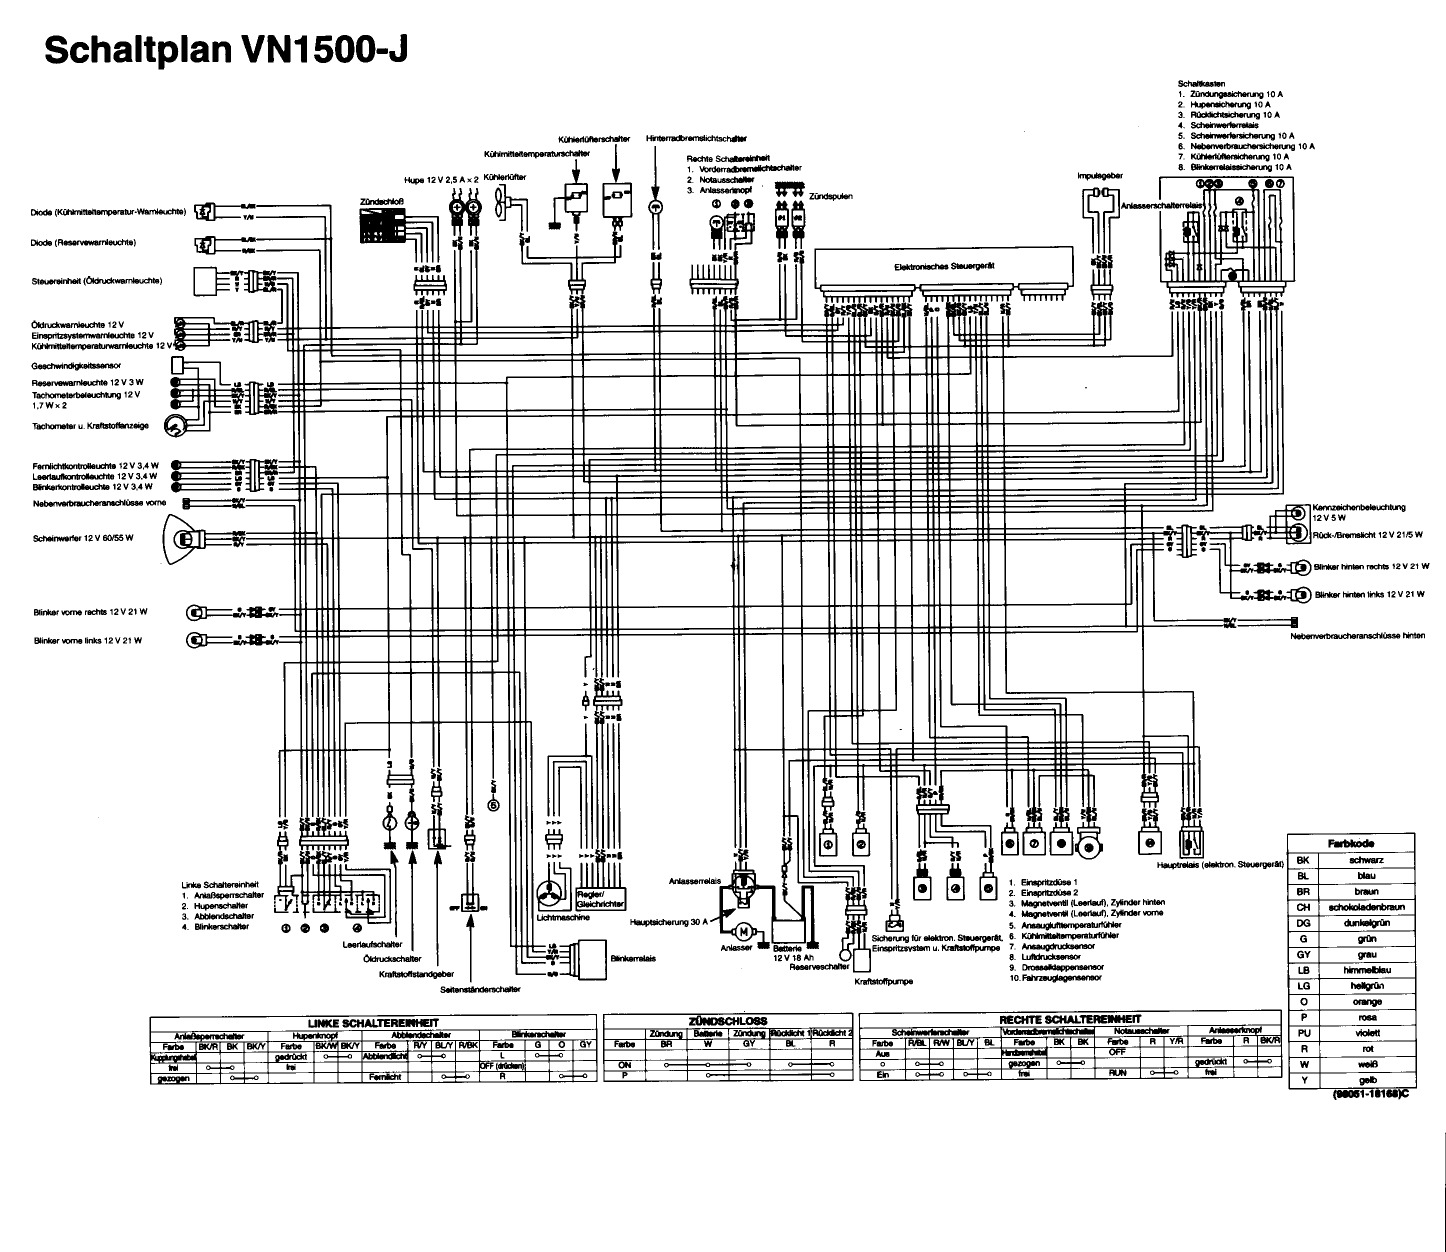 [DIAGRAM] Kawasaki Vn800 Wiring Diagram FULL Version HD